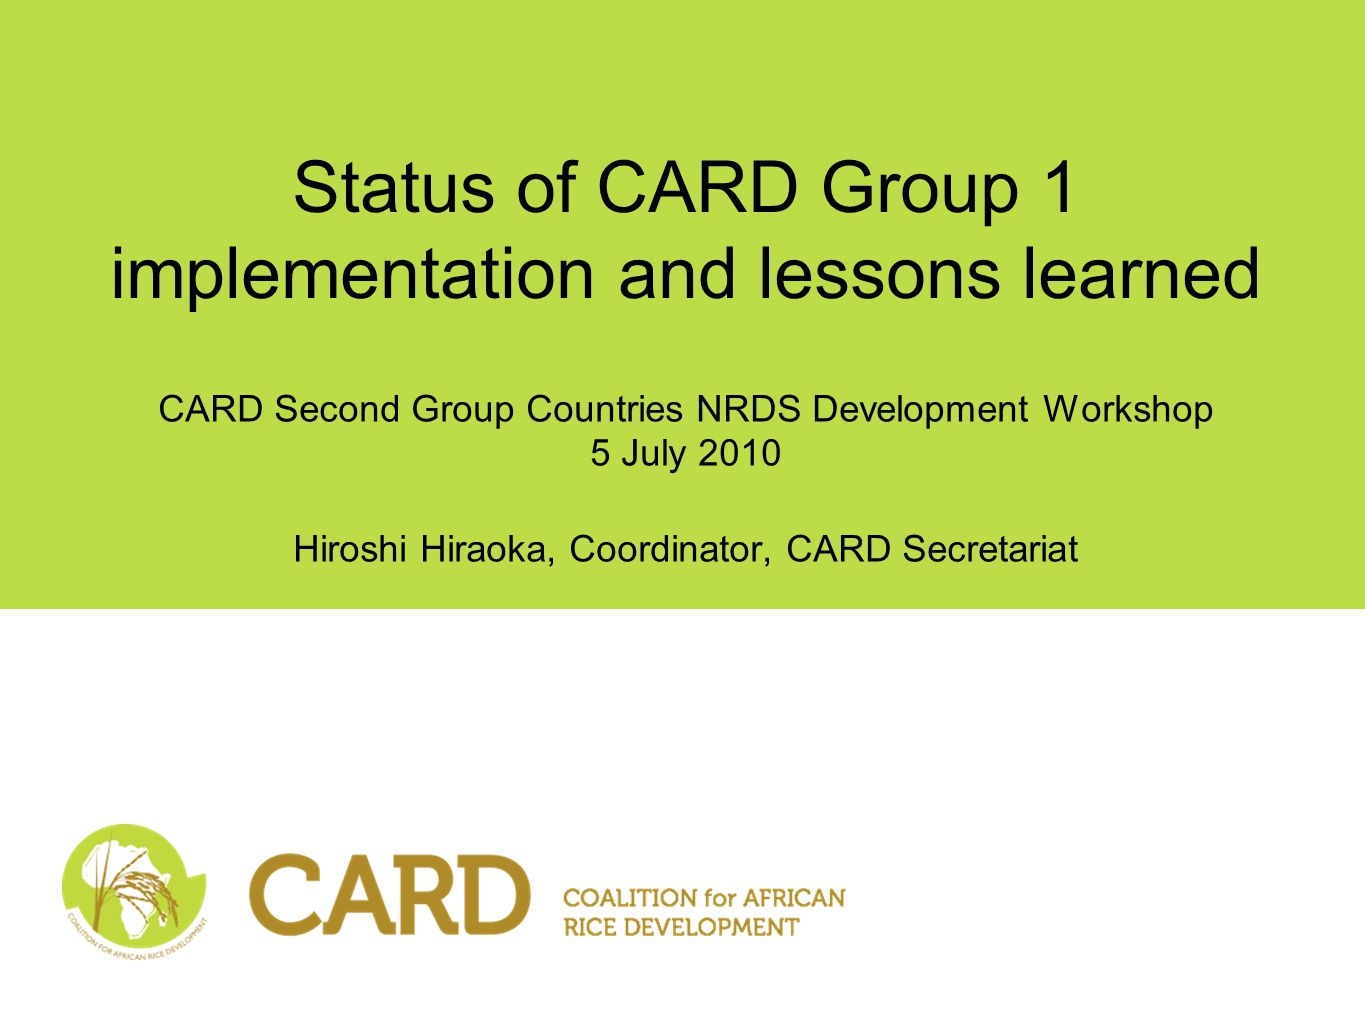 Status of CARD Group 1 implementation and lessons learned CARD Second Group Countries NRDS Development Workshop 5 July 2010 Hiroshi Hiraoka, Coordinator, CARD Secretariat